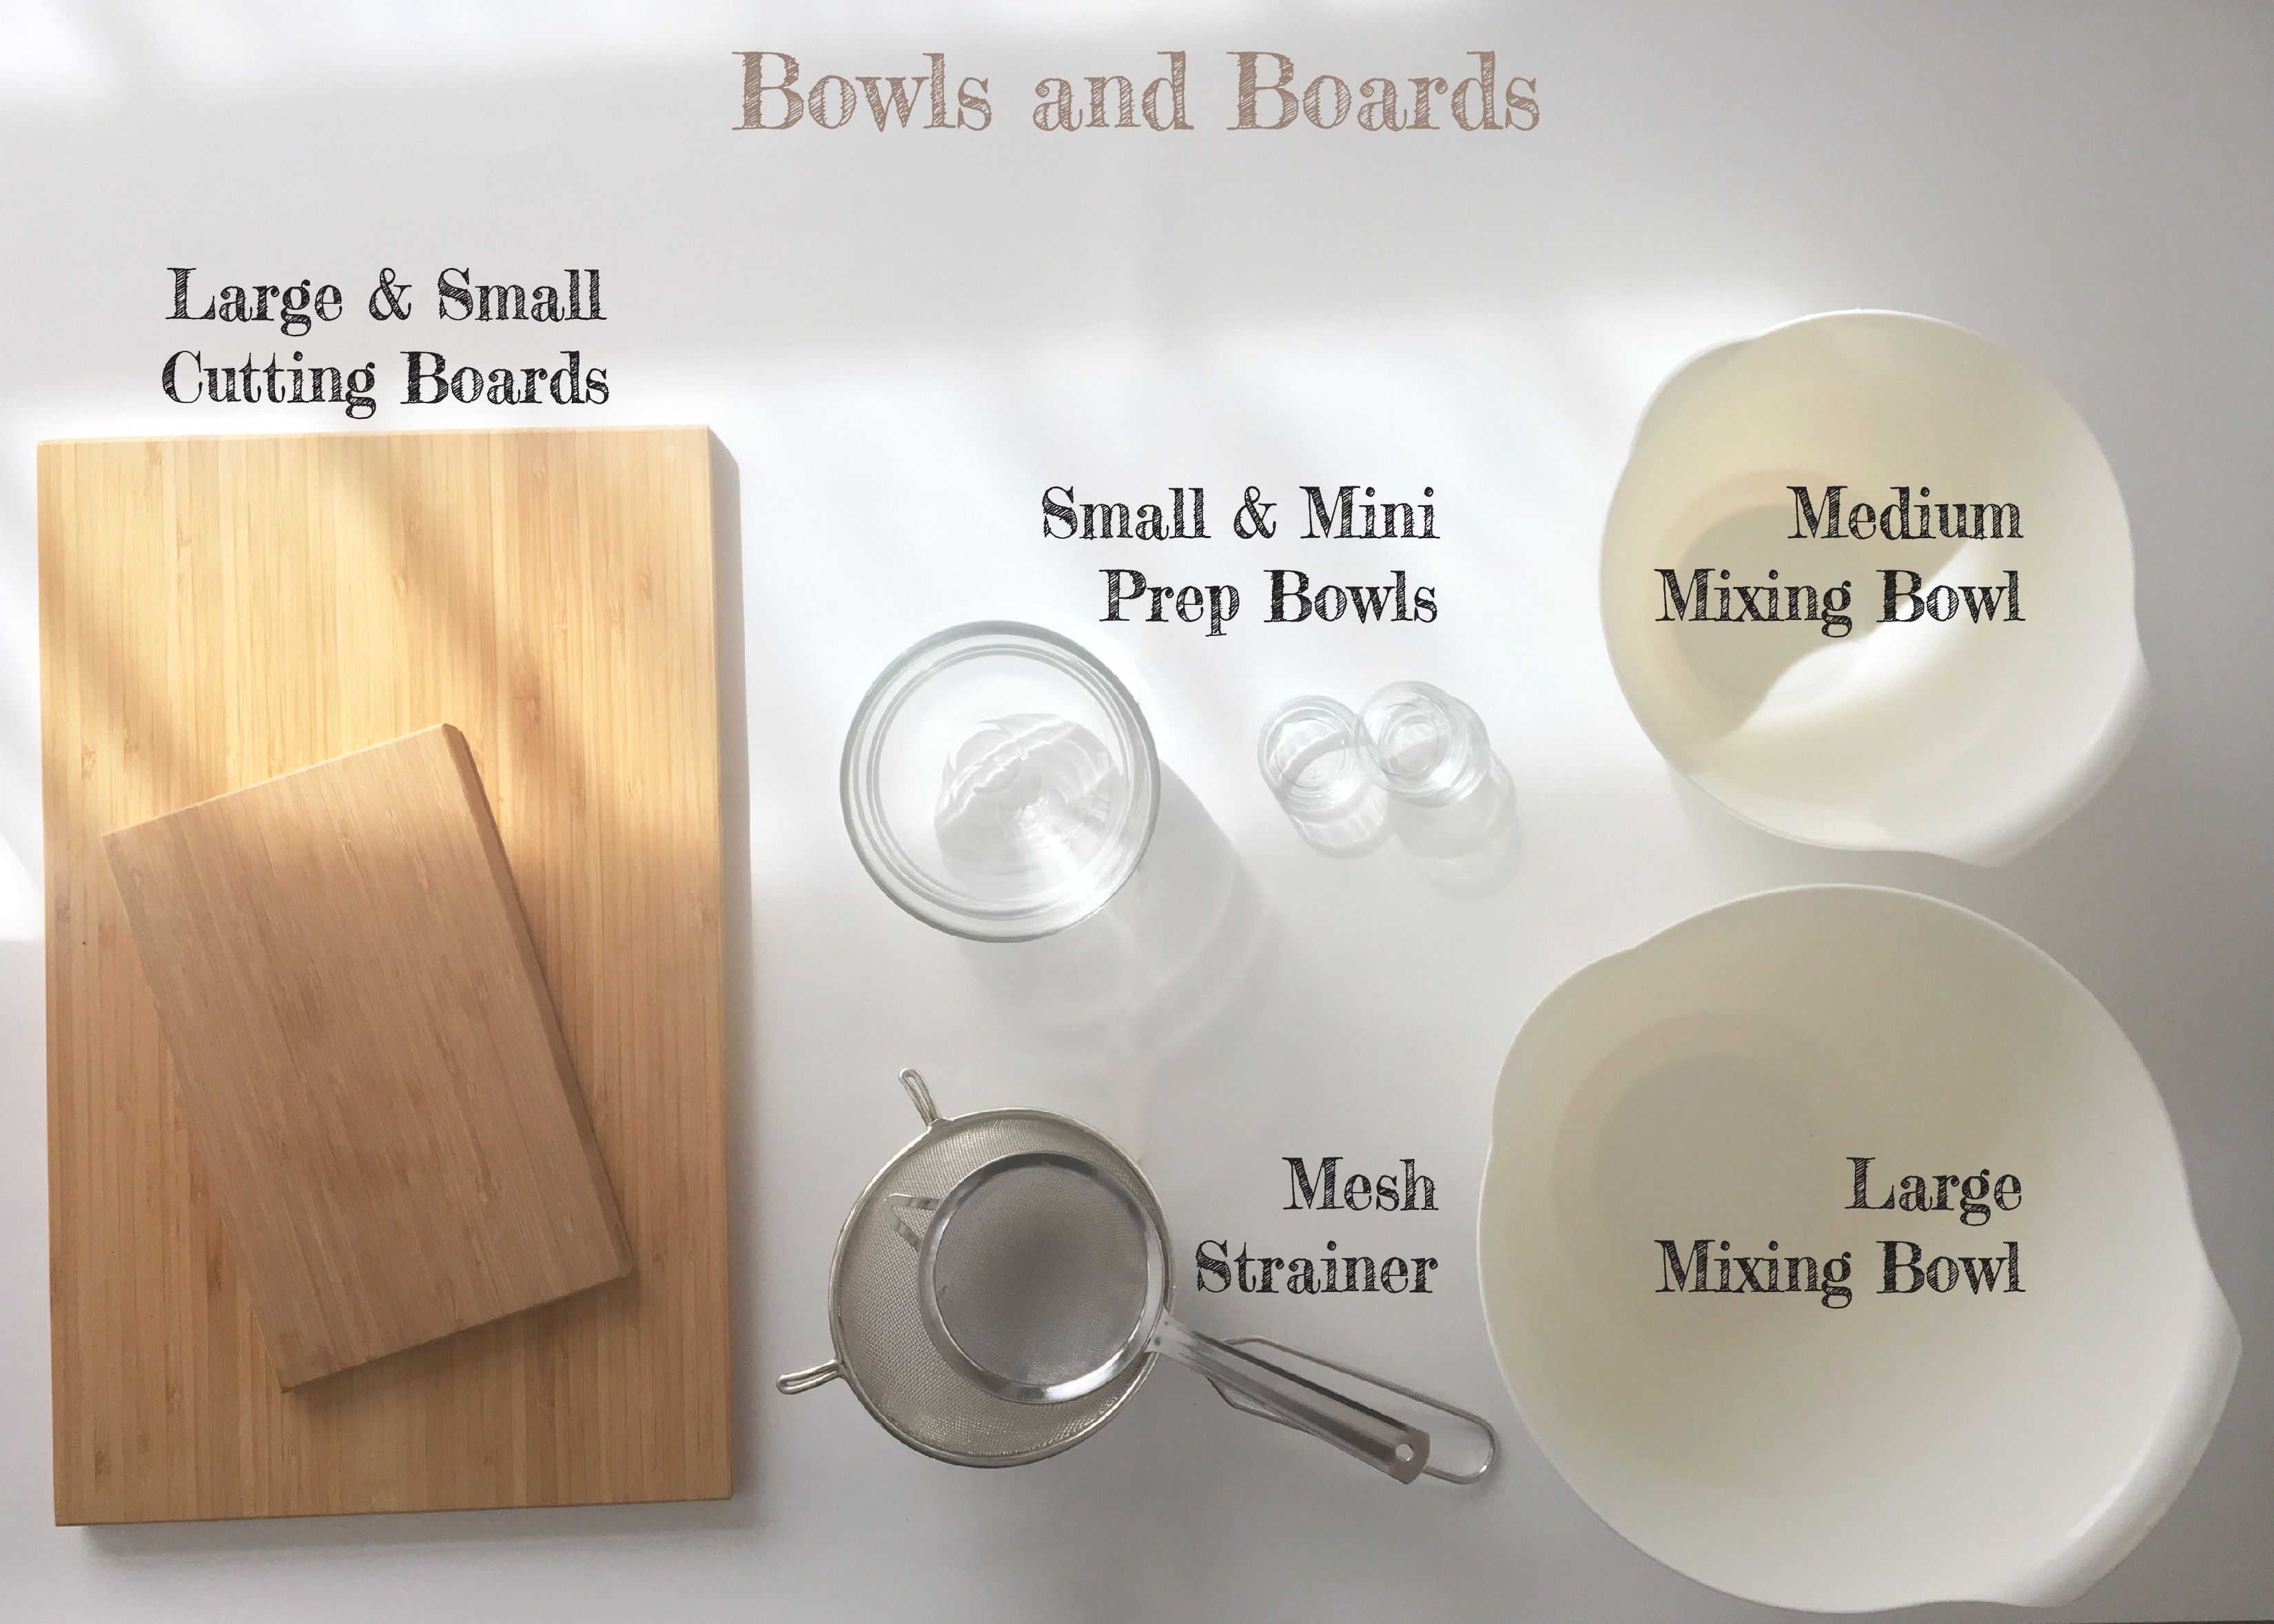 Basic kitchen essentials andrea maronyan - Cutting board with prep bowls ...